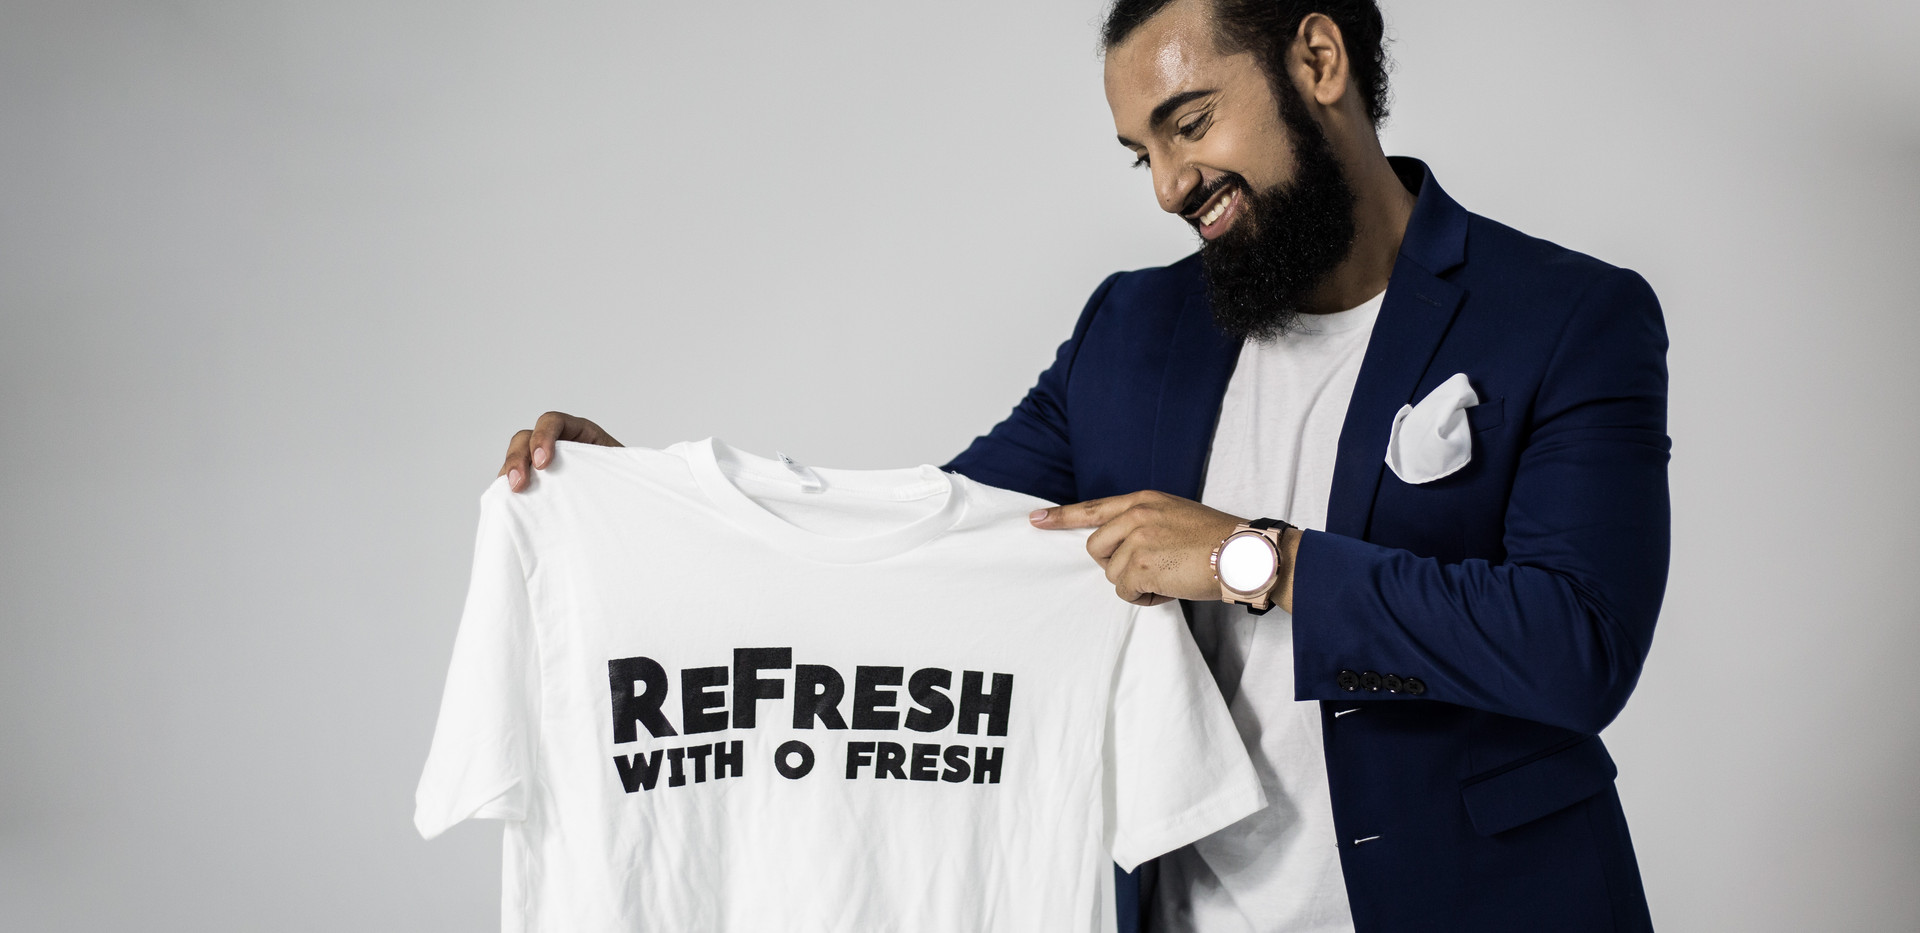 ReFresh Shirts